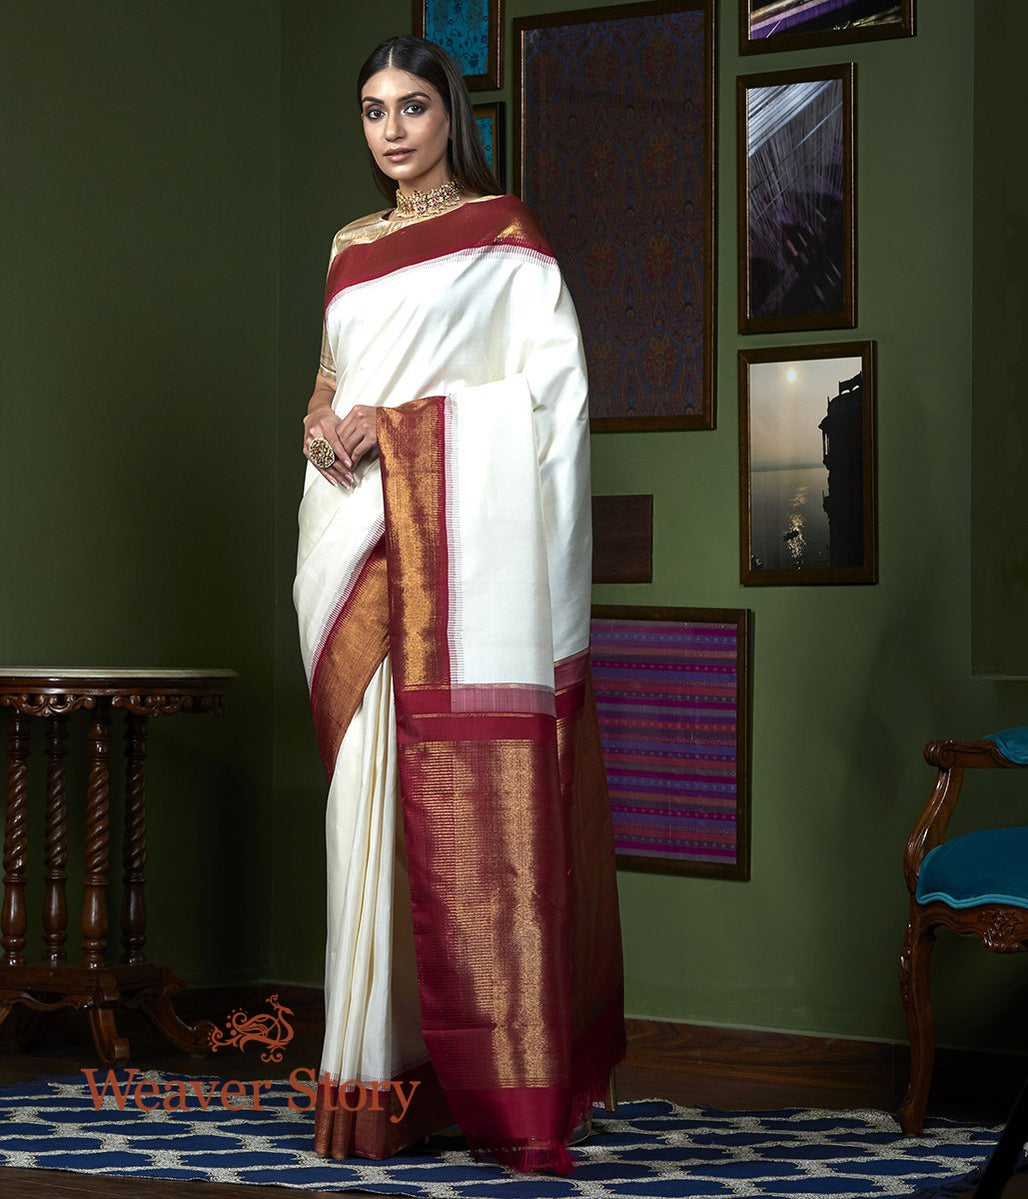 Handwoven Offwhite Plain Kanjivaram Saree with Maroon Pure Zari Border